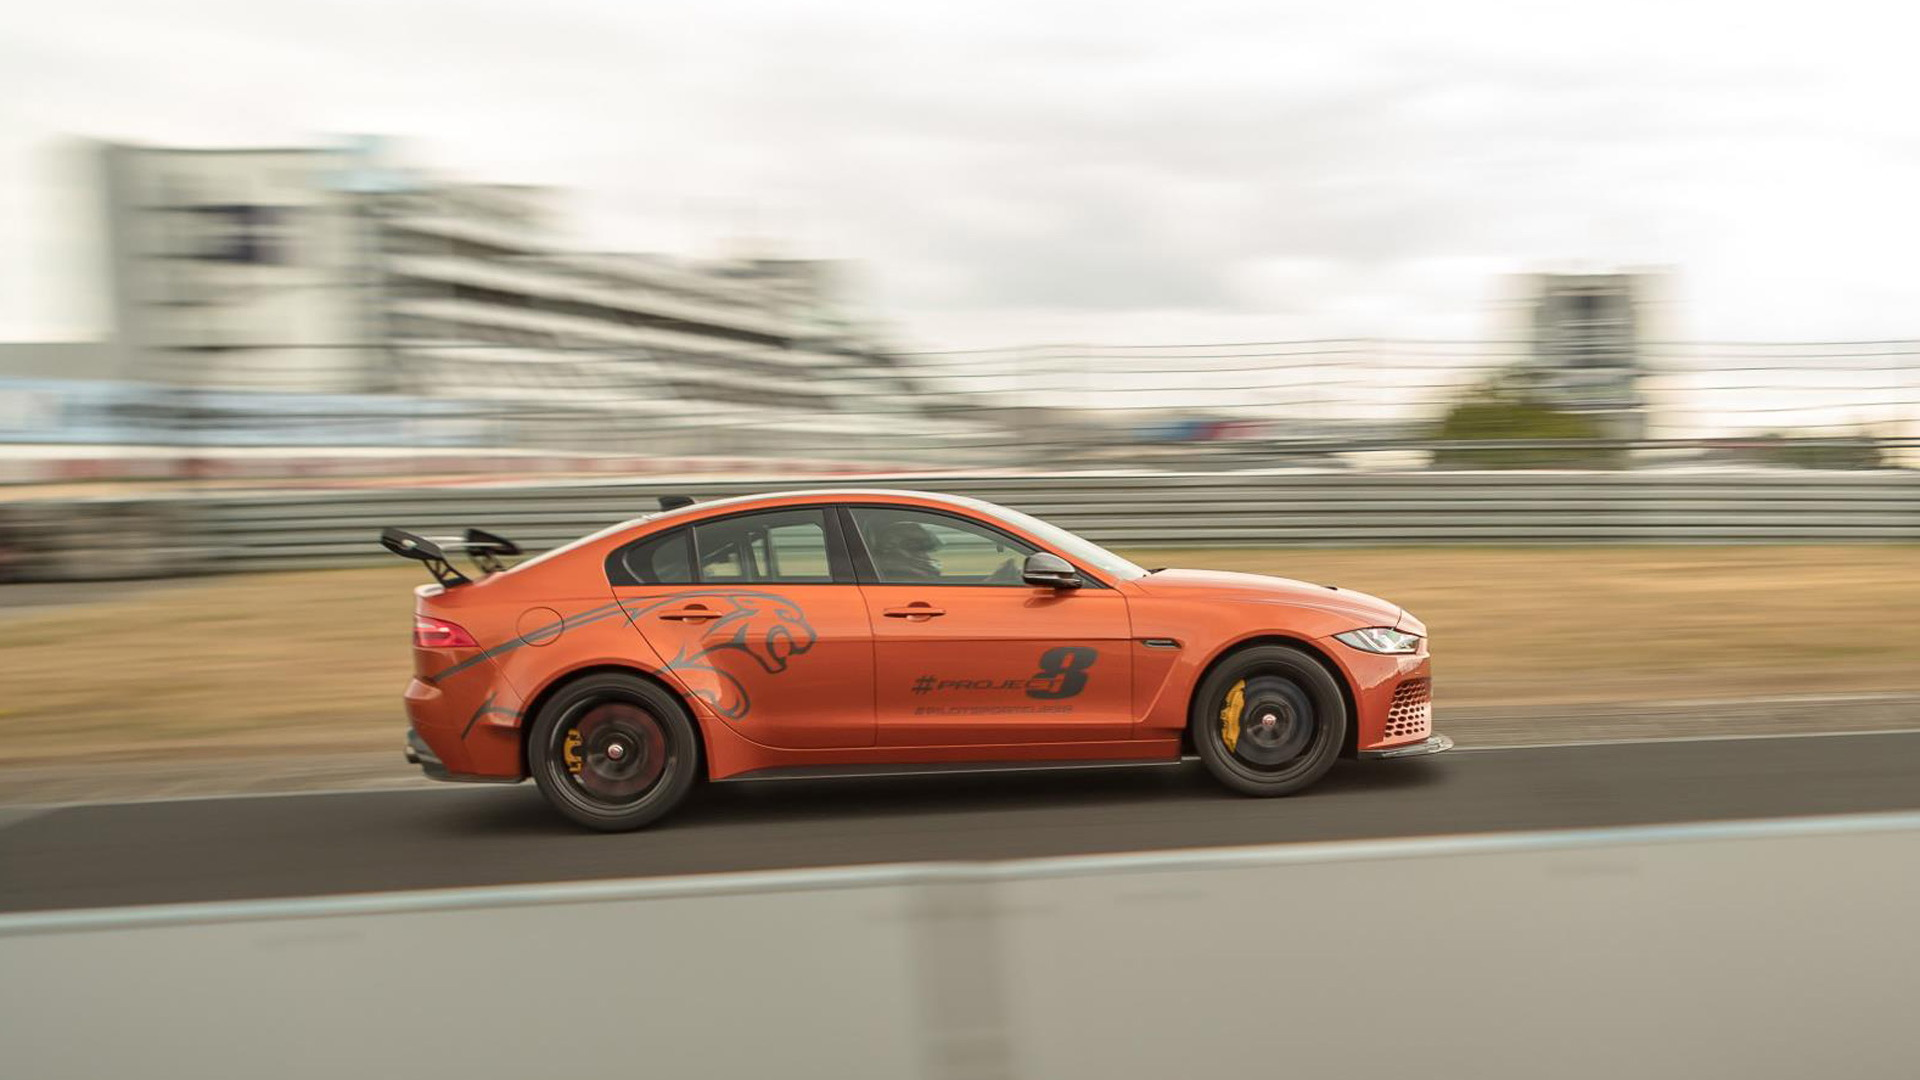 Jaguar XE SV Project 8 sets 7:18.361 Nürburgring lap time